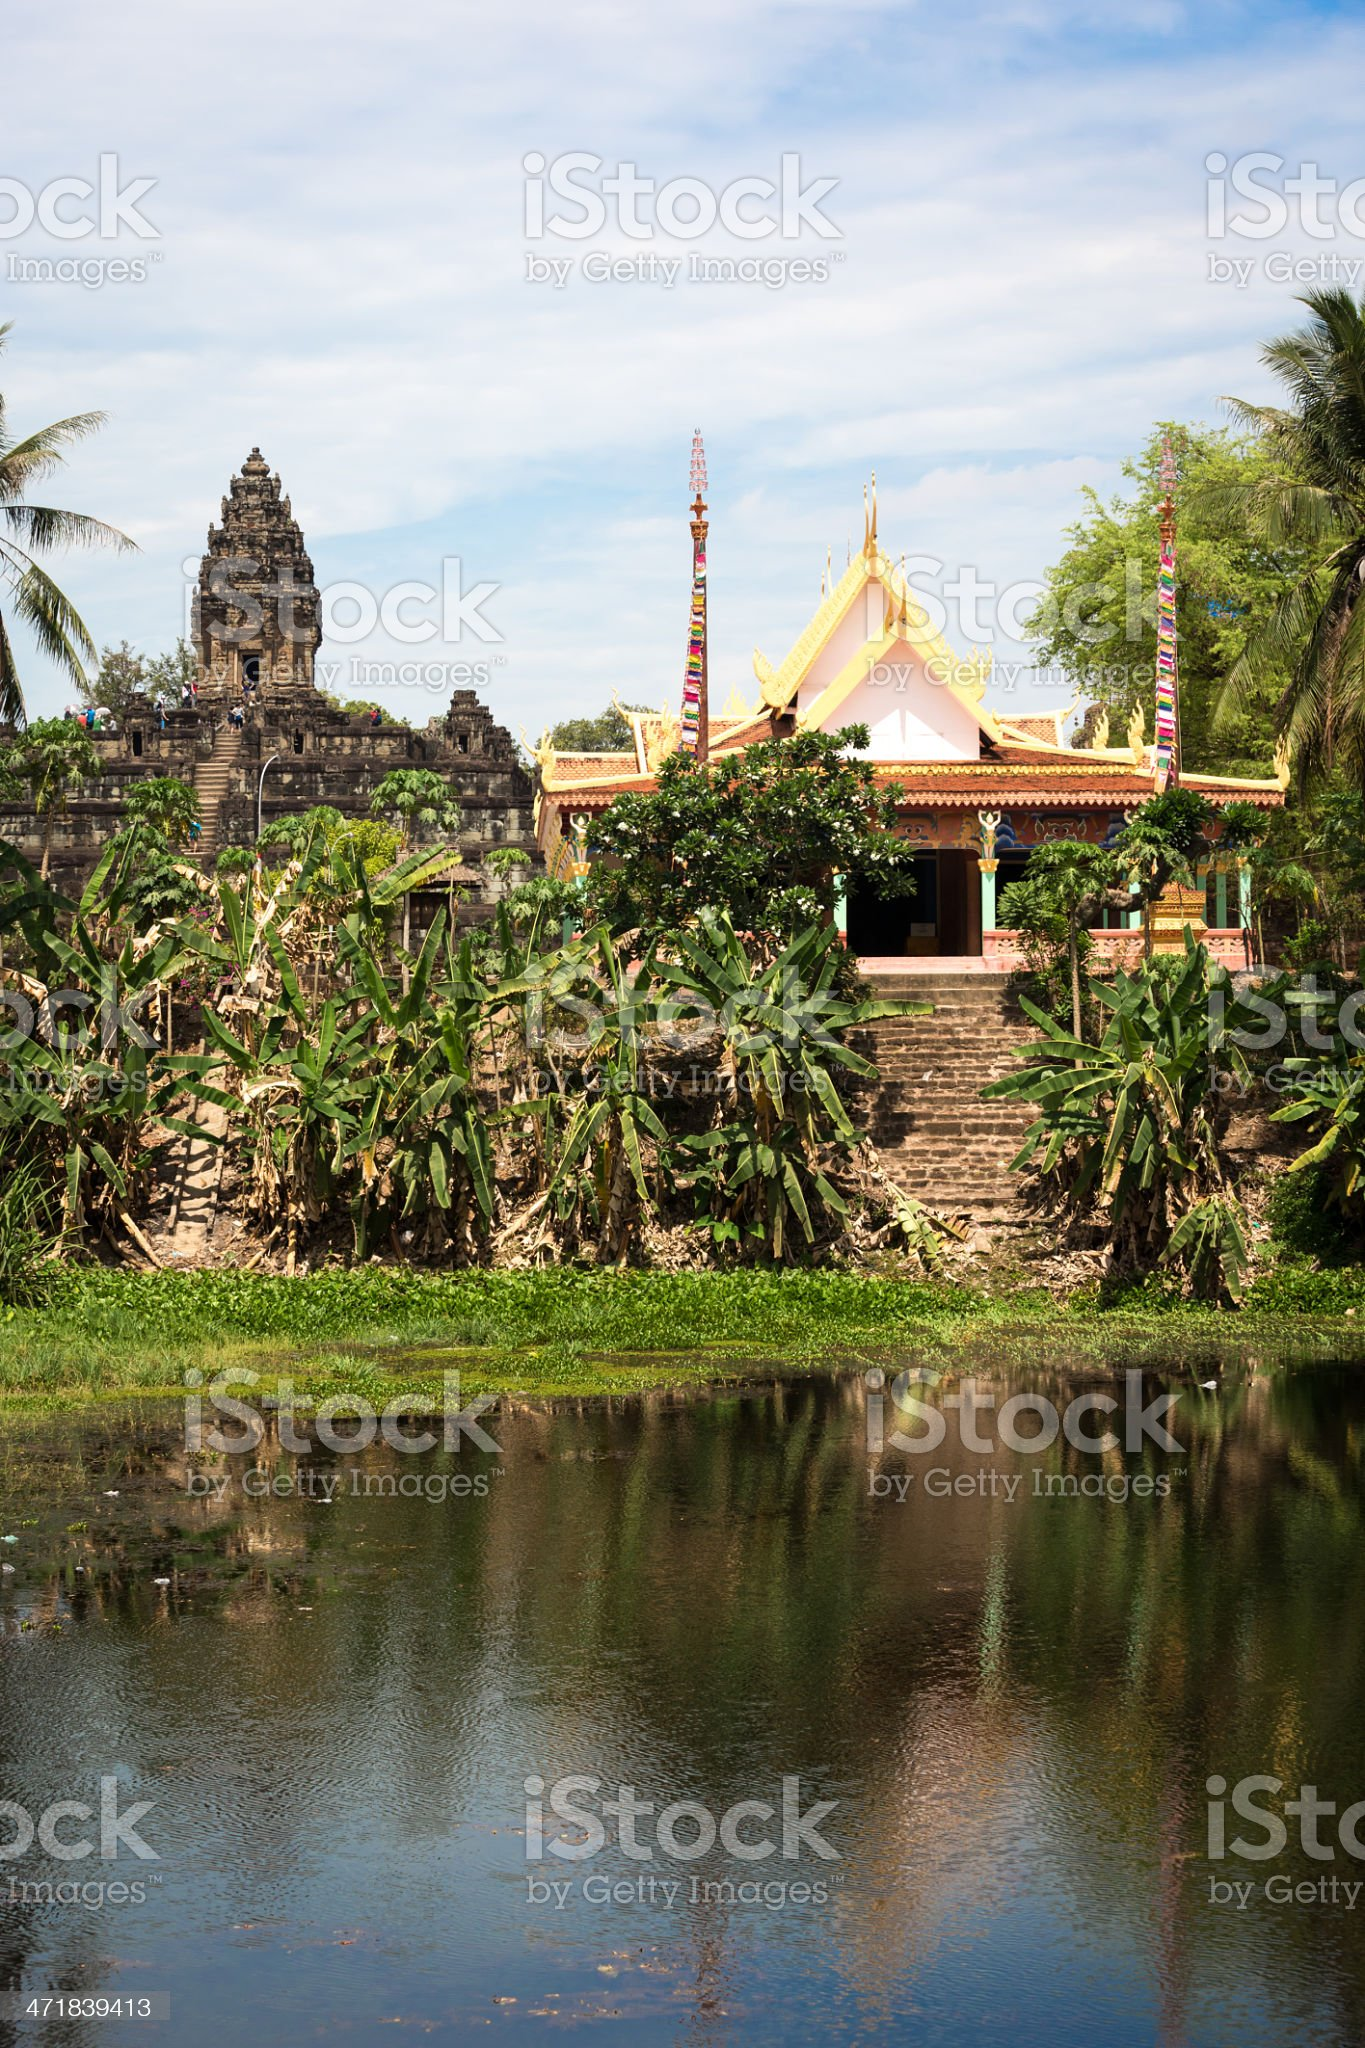 Bakong Temple In Siem Reap and Lake, Cambodia royalty-free stock photo